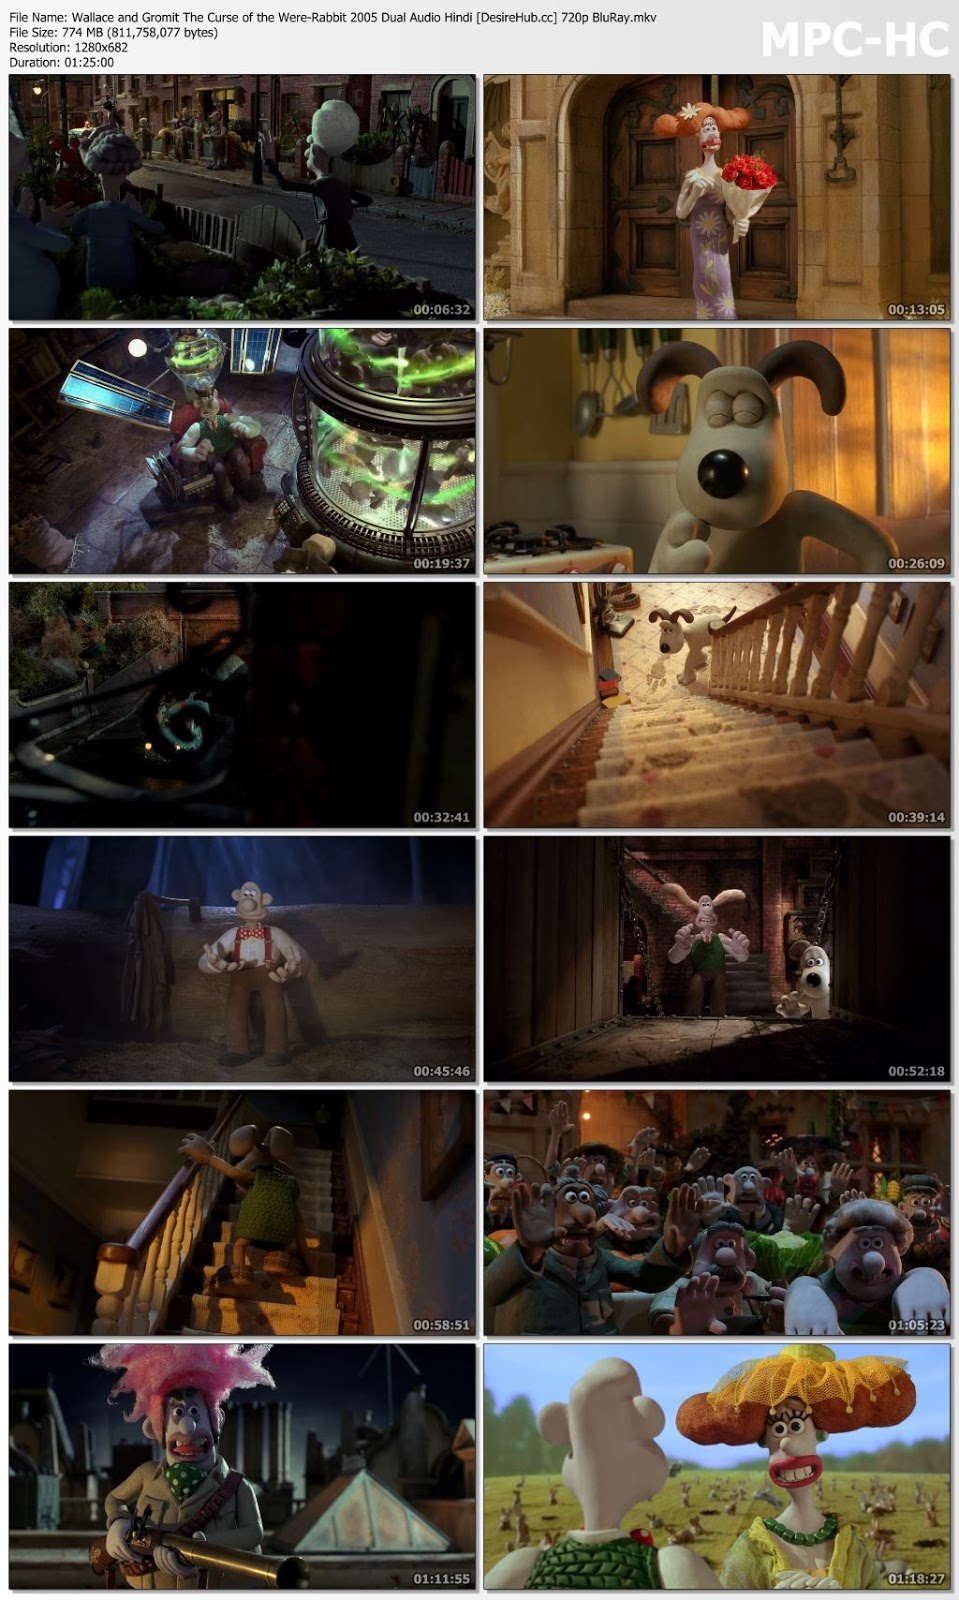 Wallace and Gromit The Curse of the Were-Rabbit 2005 Dual Audio Hindi 720p BluRay 750mb Desirehub